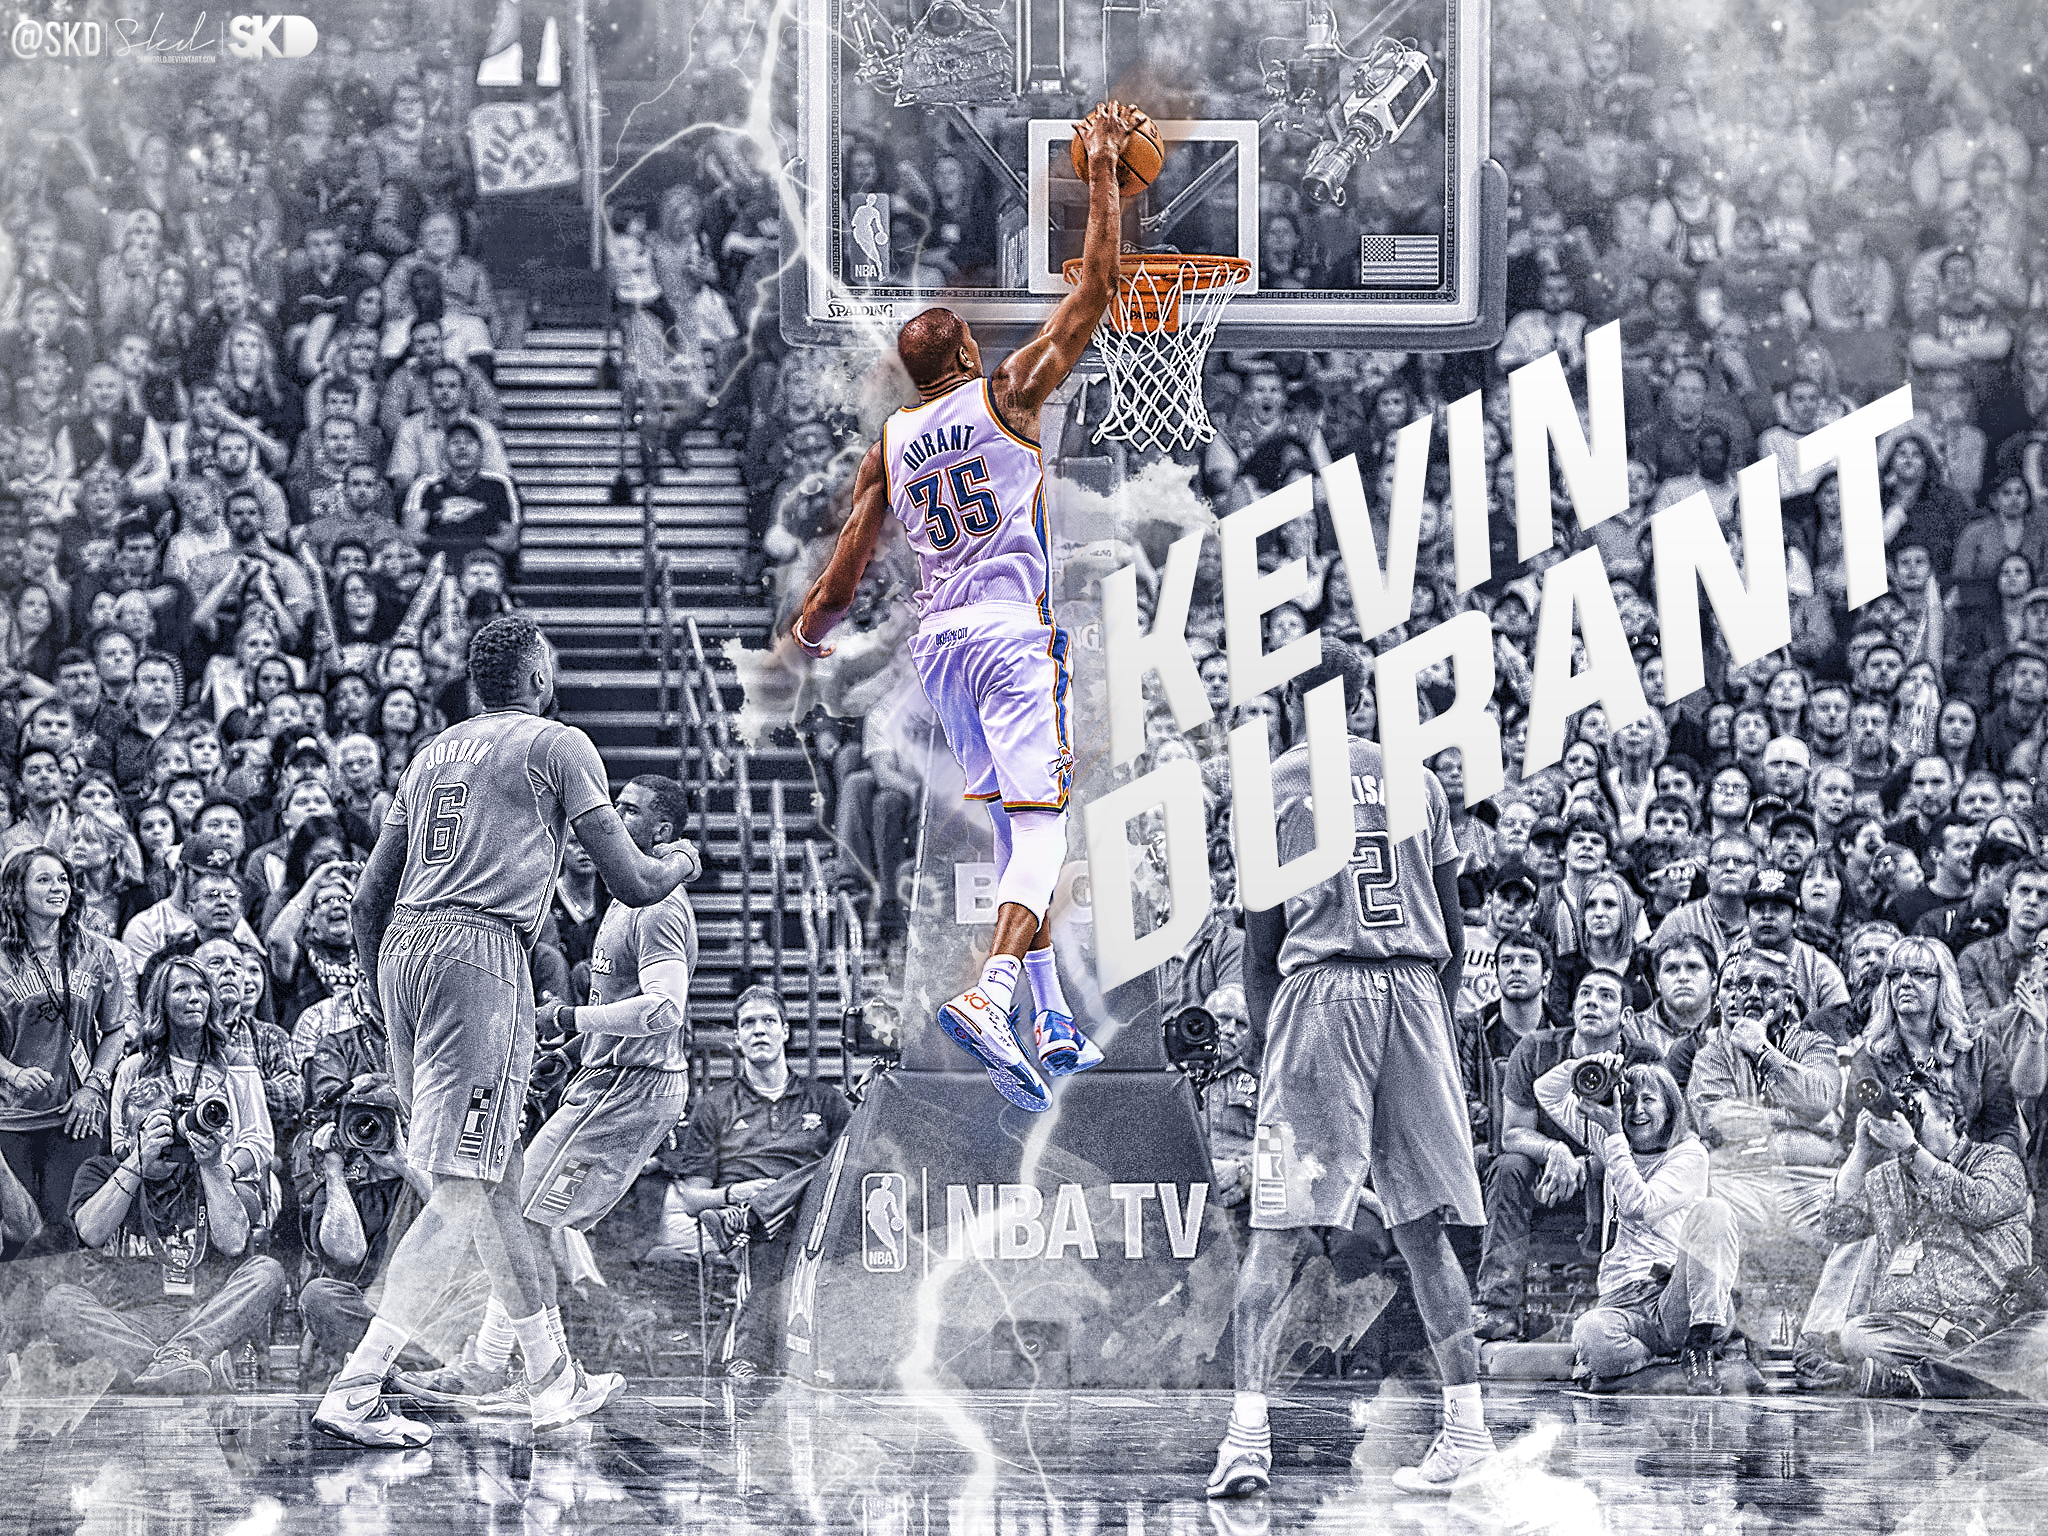 download Kevin Durant Cold Dunk Wallpaper by SkdWorld 2048x1536